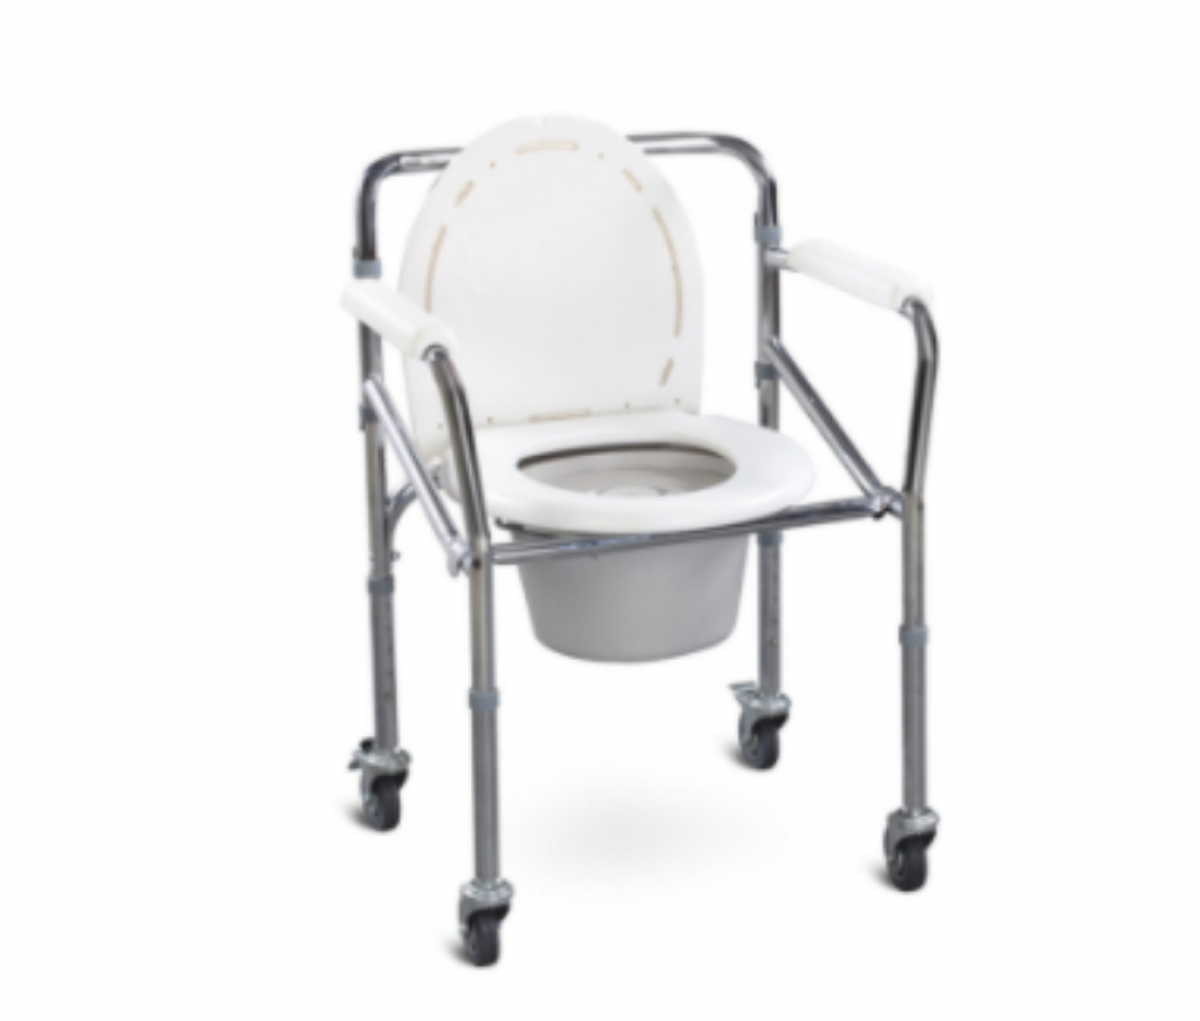 Commode Chair SS With Caster Wheels - SQ1011